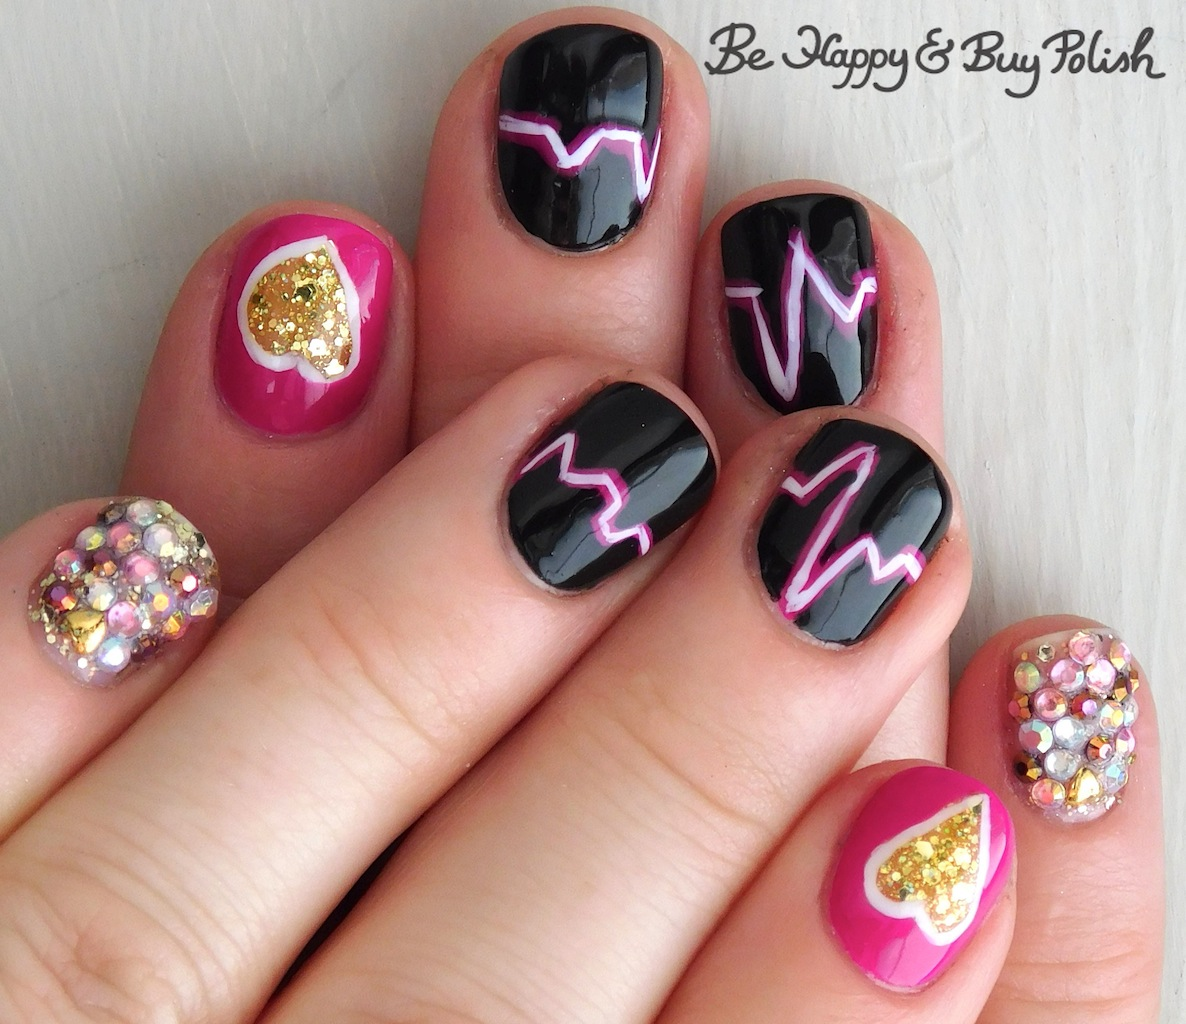 Sinful Cotton Candy Nail Polish: Heartbeat Skittlette Manicure With L.A. Colors, Sinful